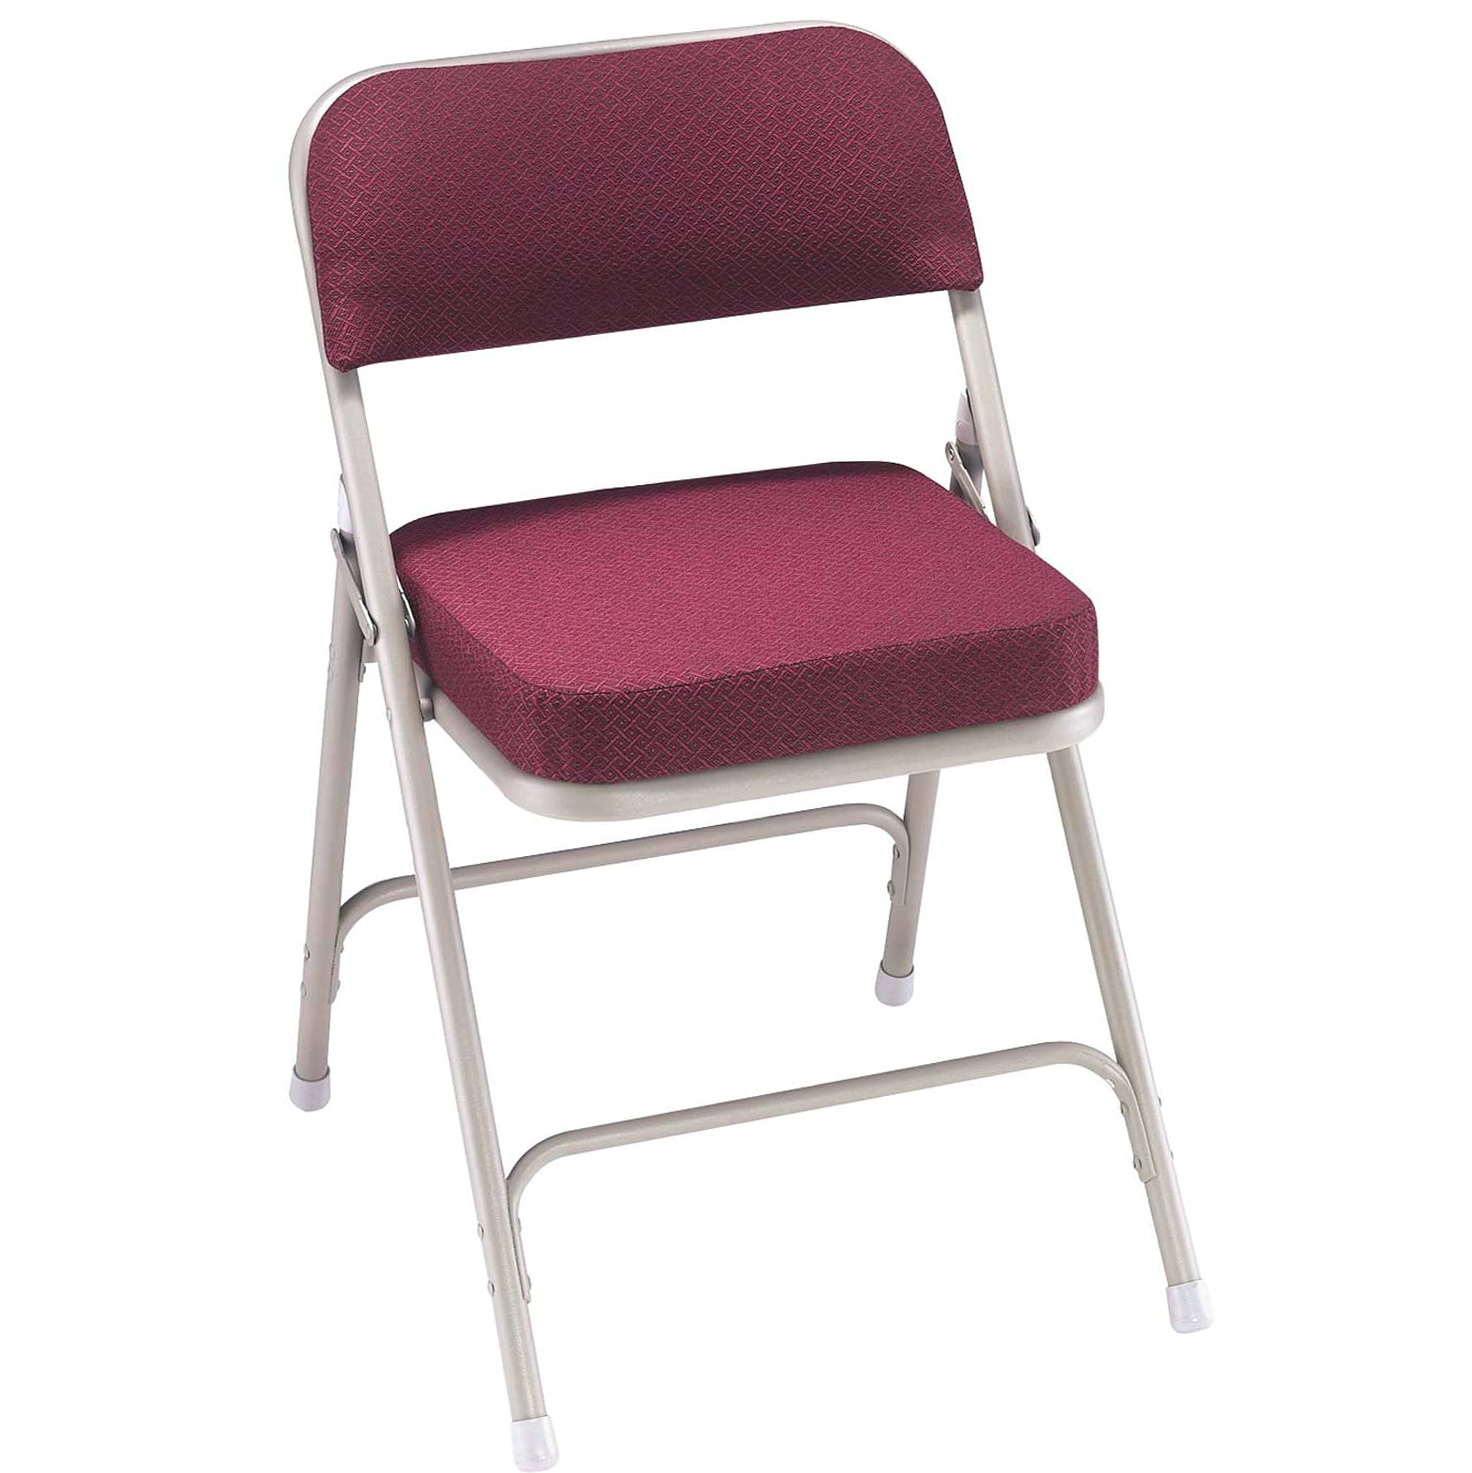 Cushioned Folding Chairs Costco